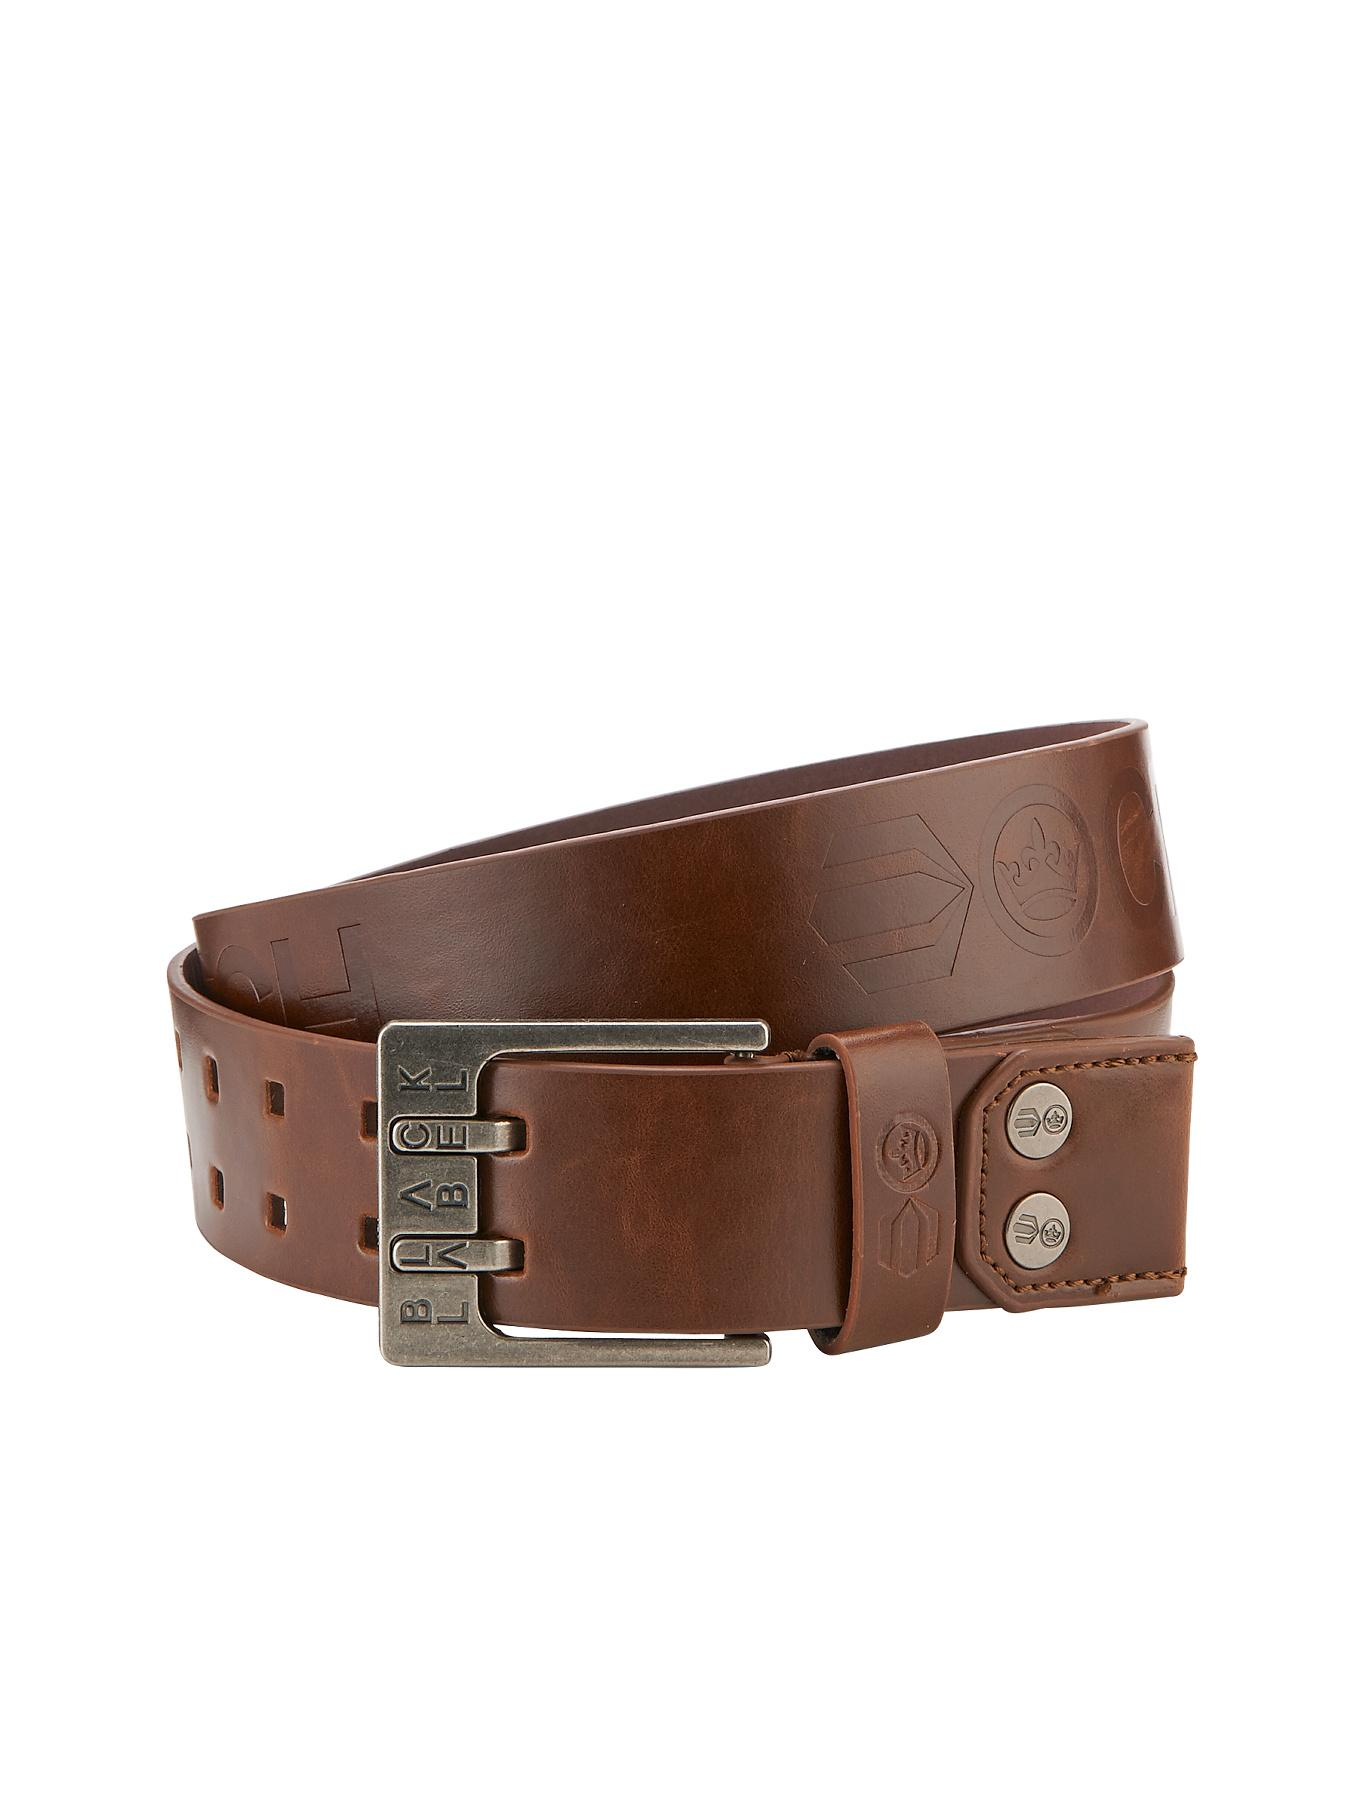 Crosshatch Mens Belt - Tan, Tan